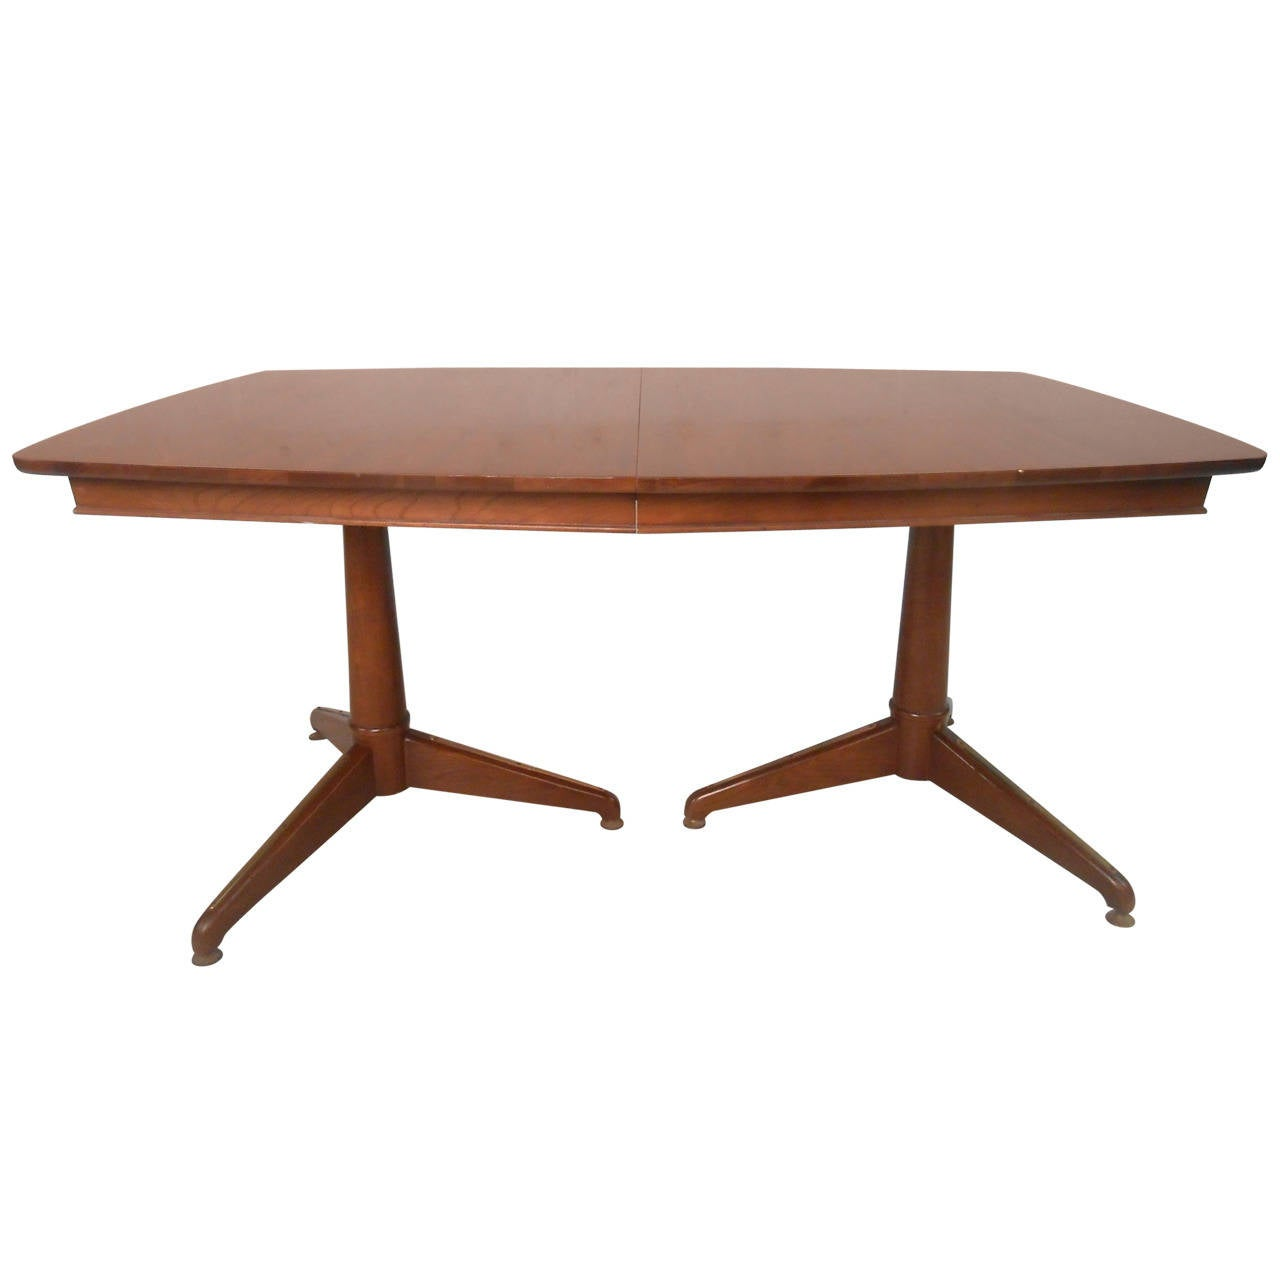 Mid century modern kent coffey perspecta dining table for for Mid century modern dining table